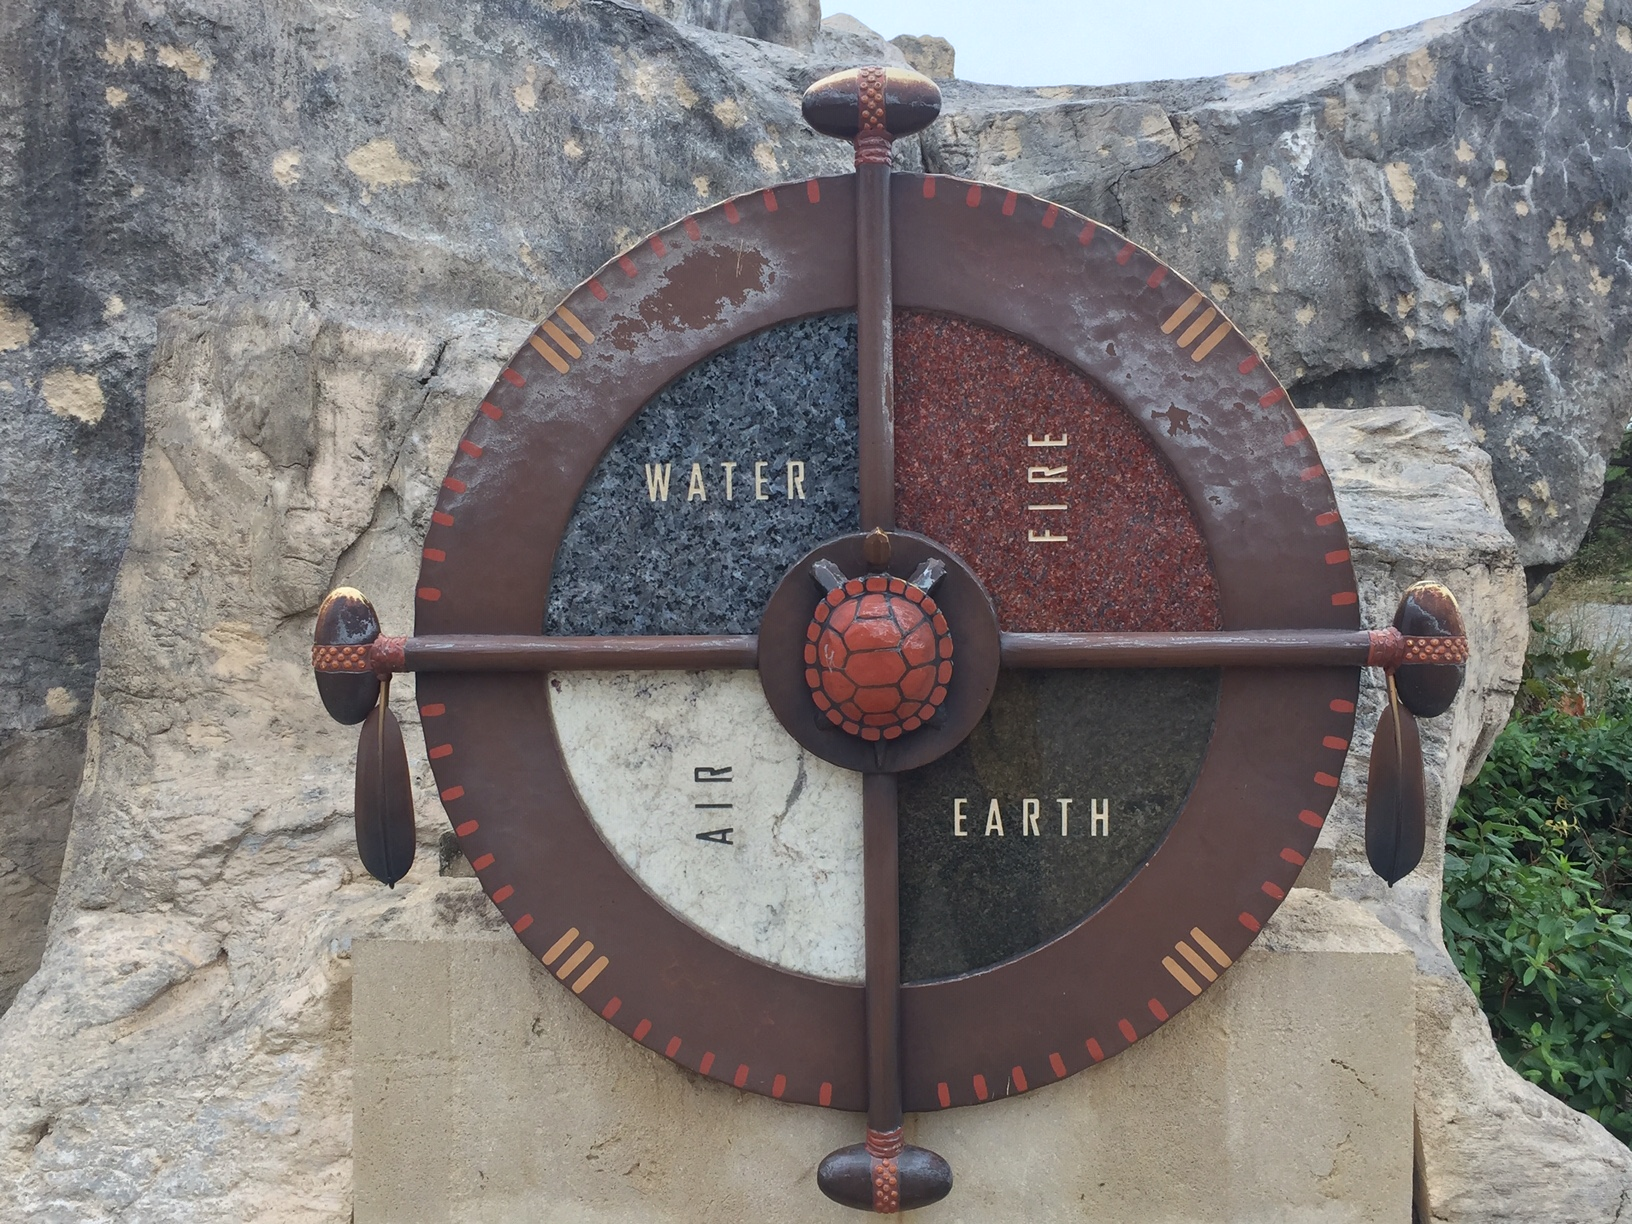 At the base of the Keeper of the Plains is this depiction of the Circle of Life, with its four elements: Water, Fire, Air, Earth. (Photo by J. Schafer)